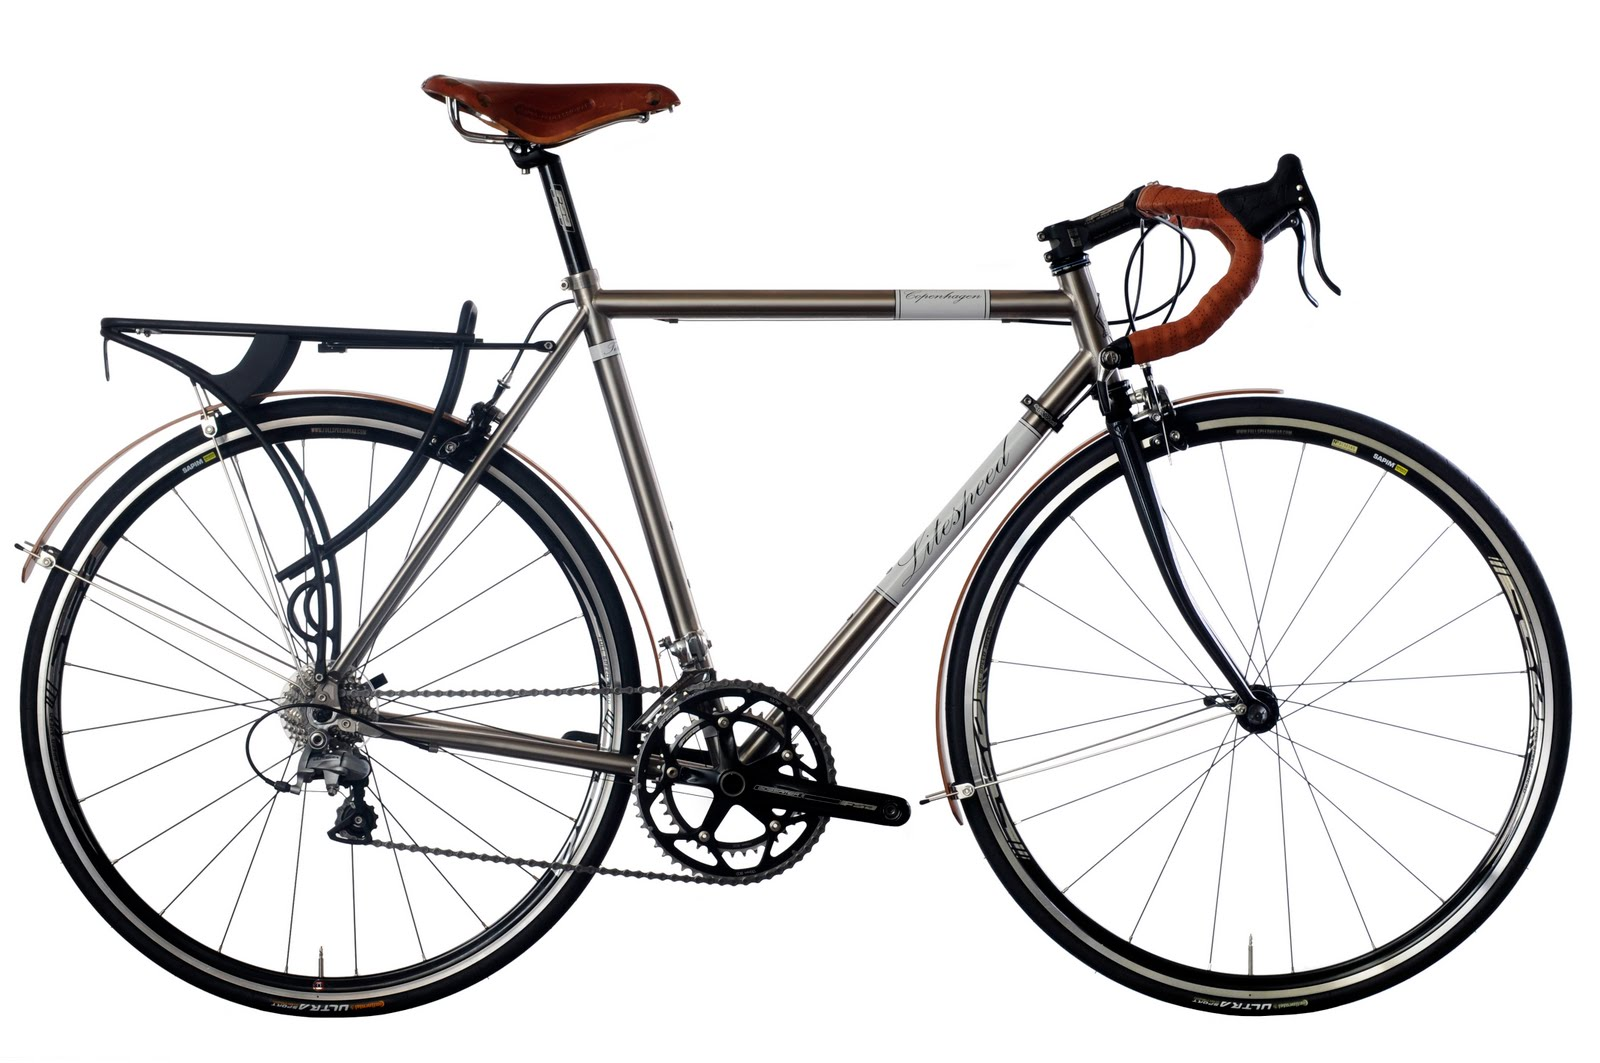 Bicycle Bs And The Lbs Litespeed Gets Creative